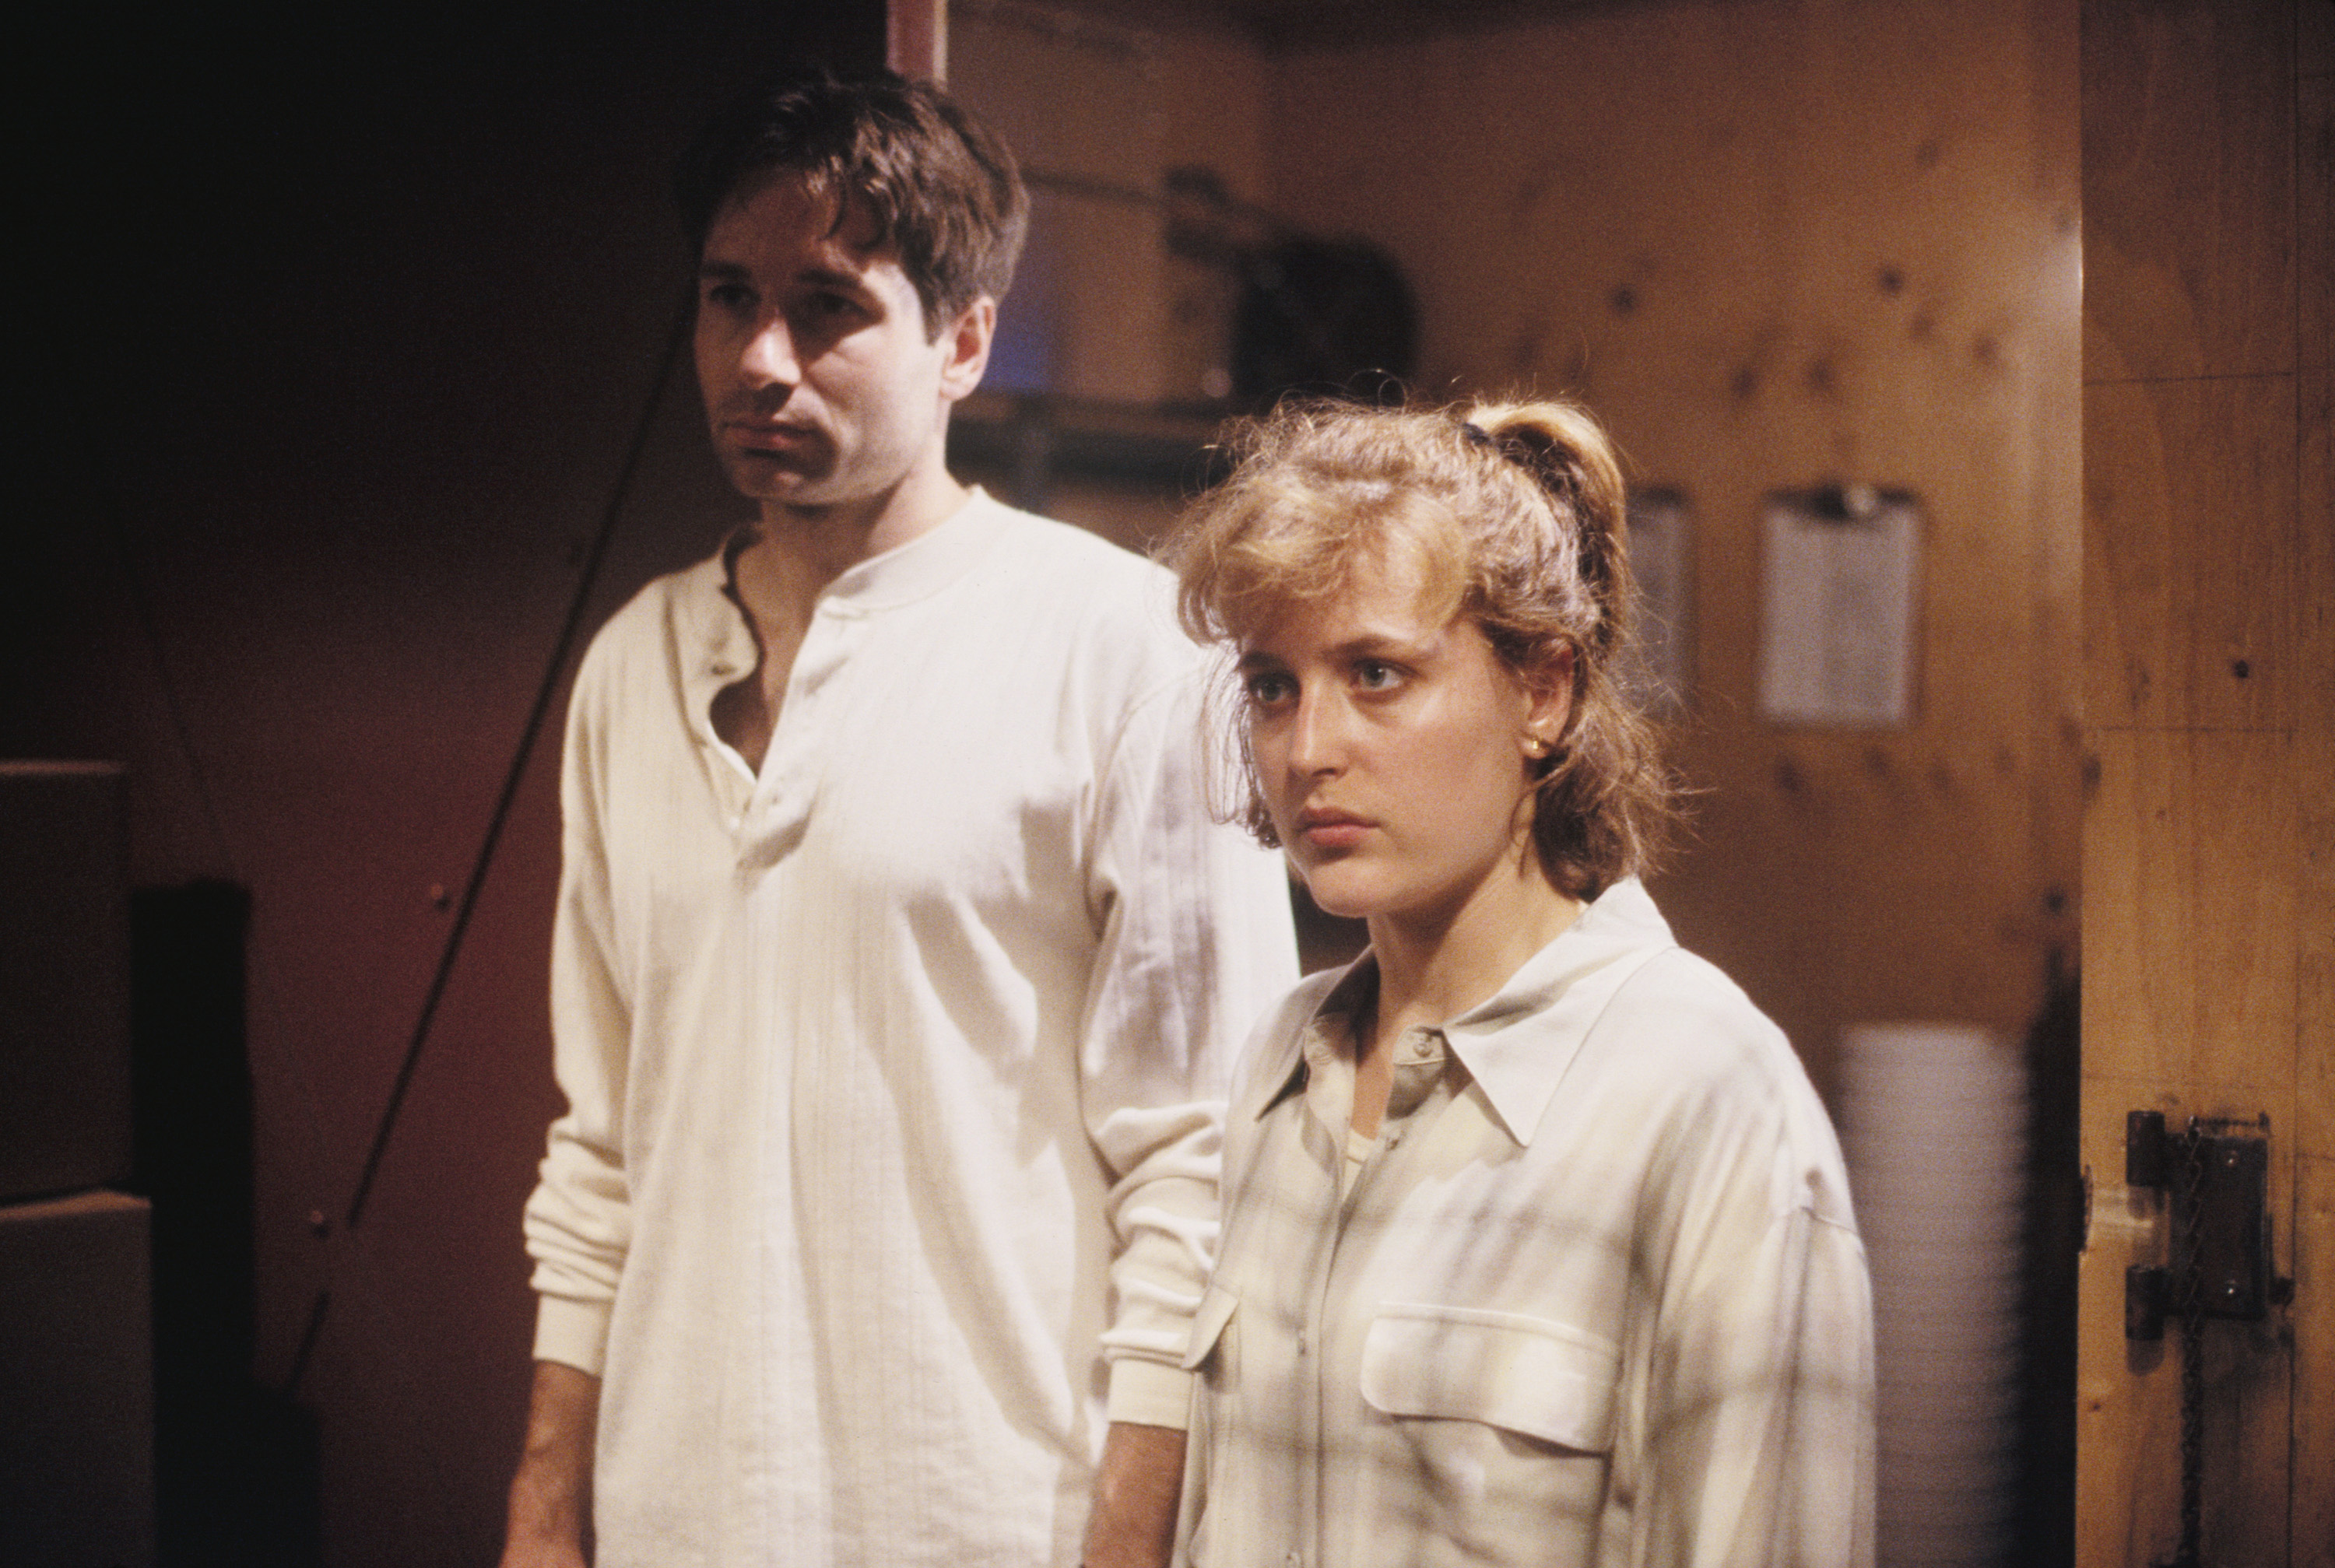 Gillian Anderson and David Duchovny are seen in <i>The X-Files</i> in 1993.